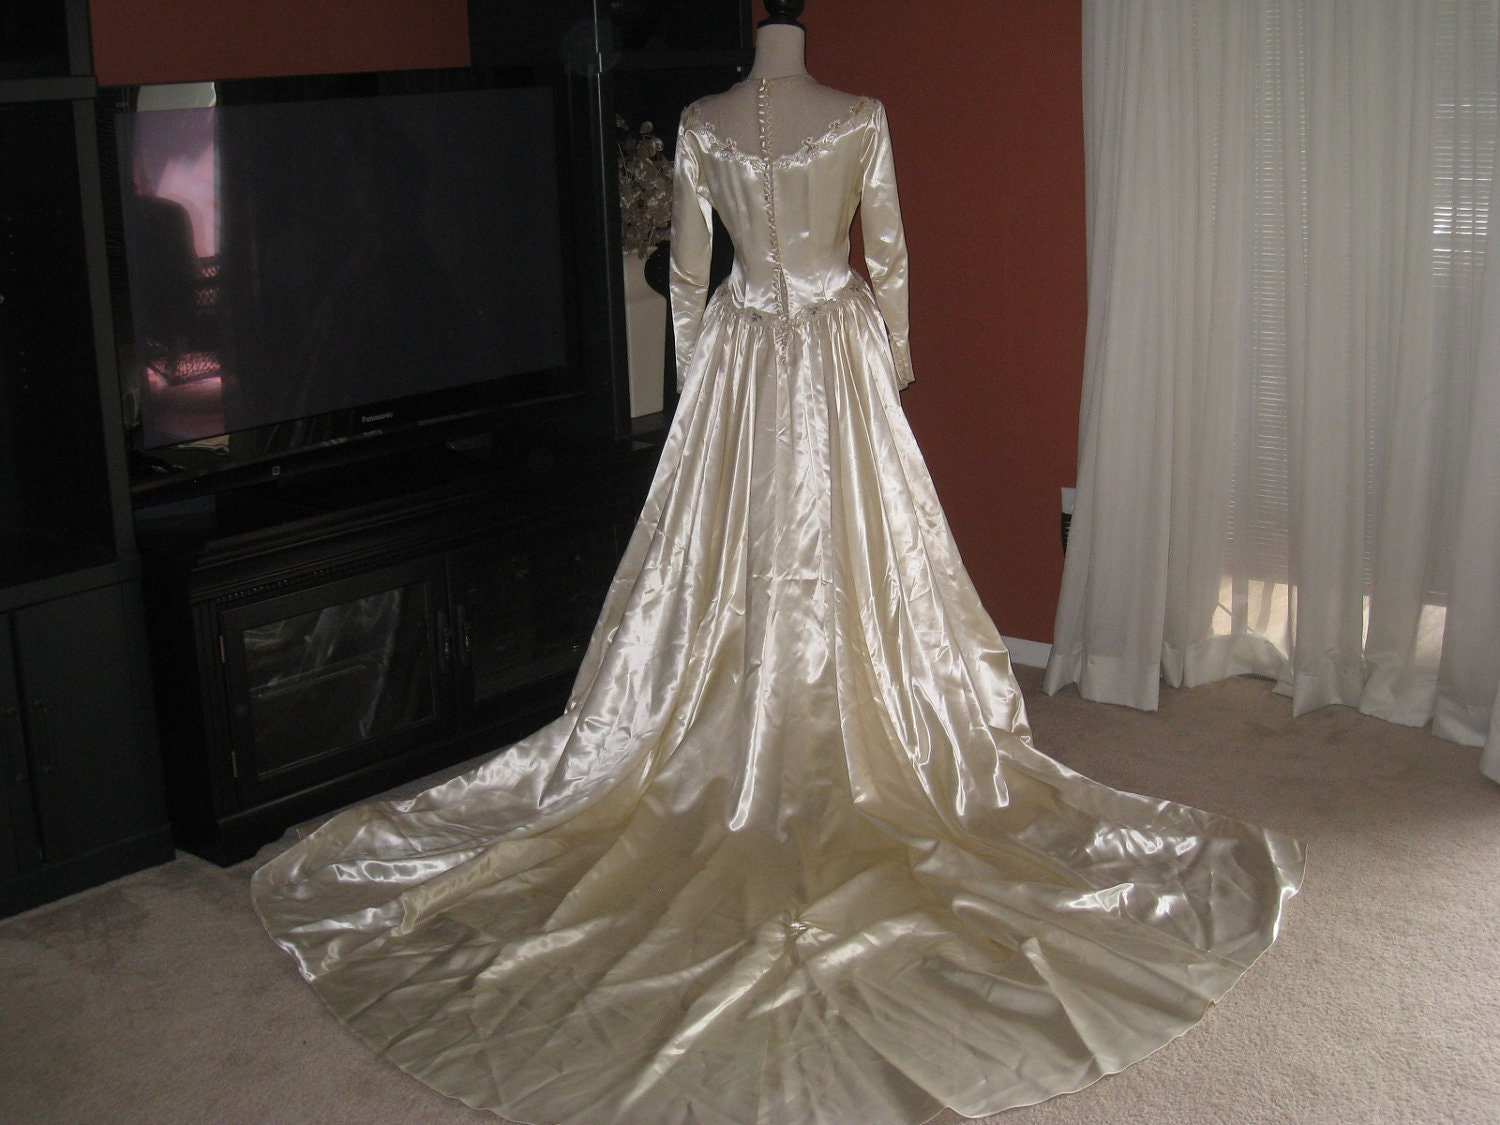 Cream Wedding Gown: RESERVED Vintage Cream Satin Wedding Dress With Ornate By